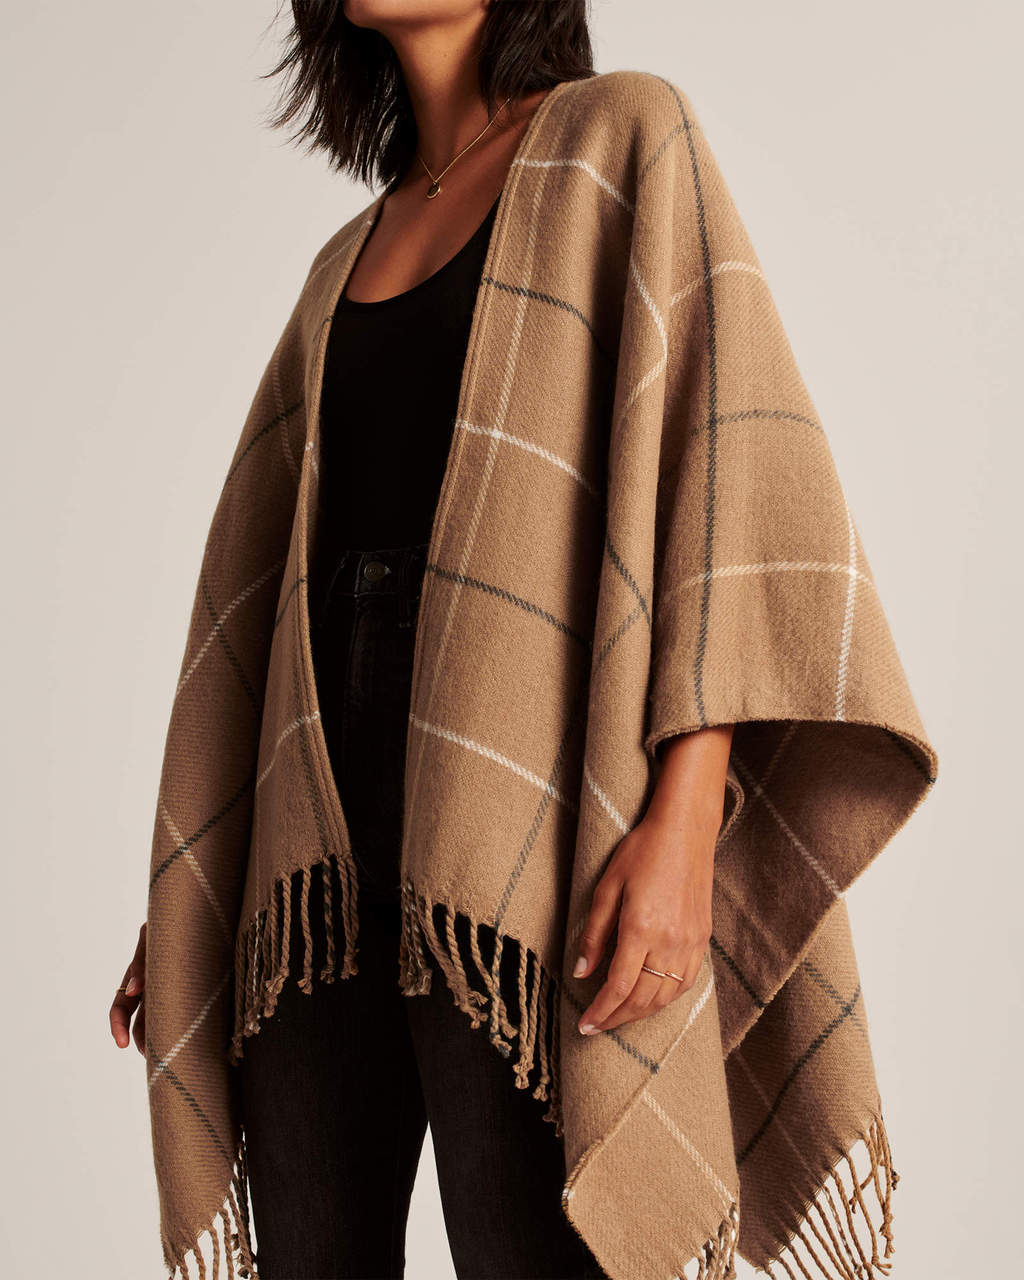 Abercrombie & Fitch Camel Brown Plaid Poncho